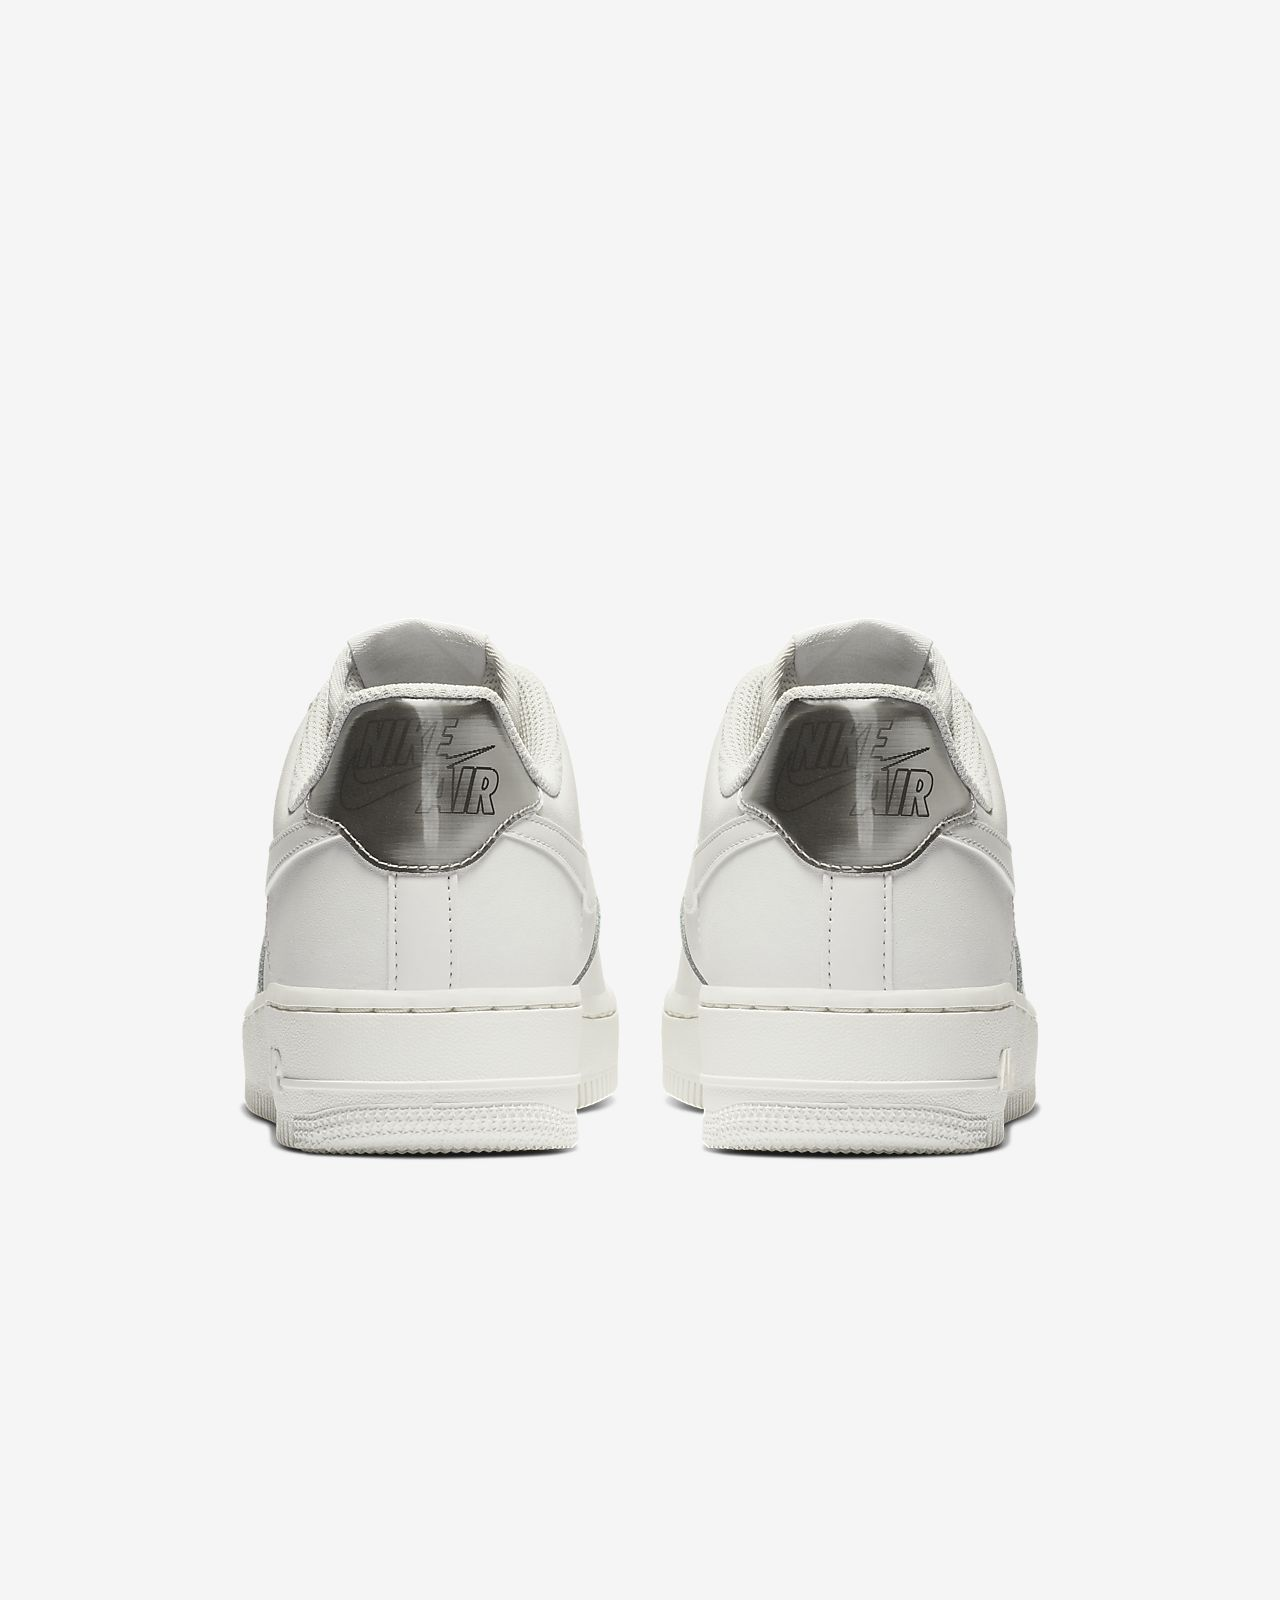 detailed look a47aa 74c29 ... Chaussure Nike Air Force 1  07 Essential pour Femme